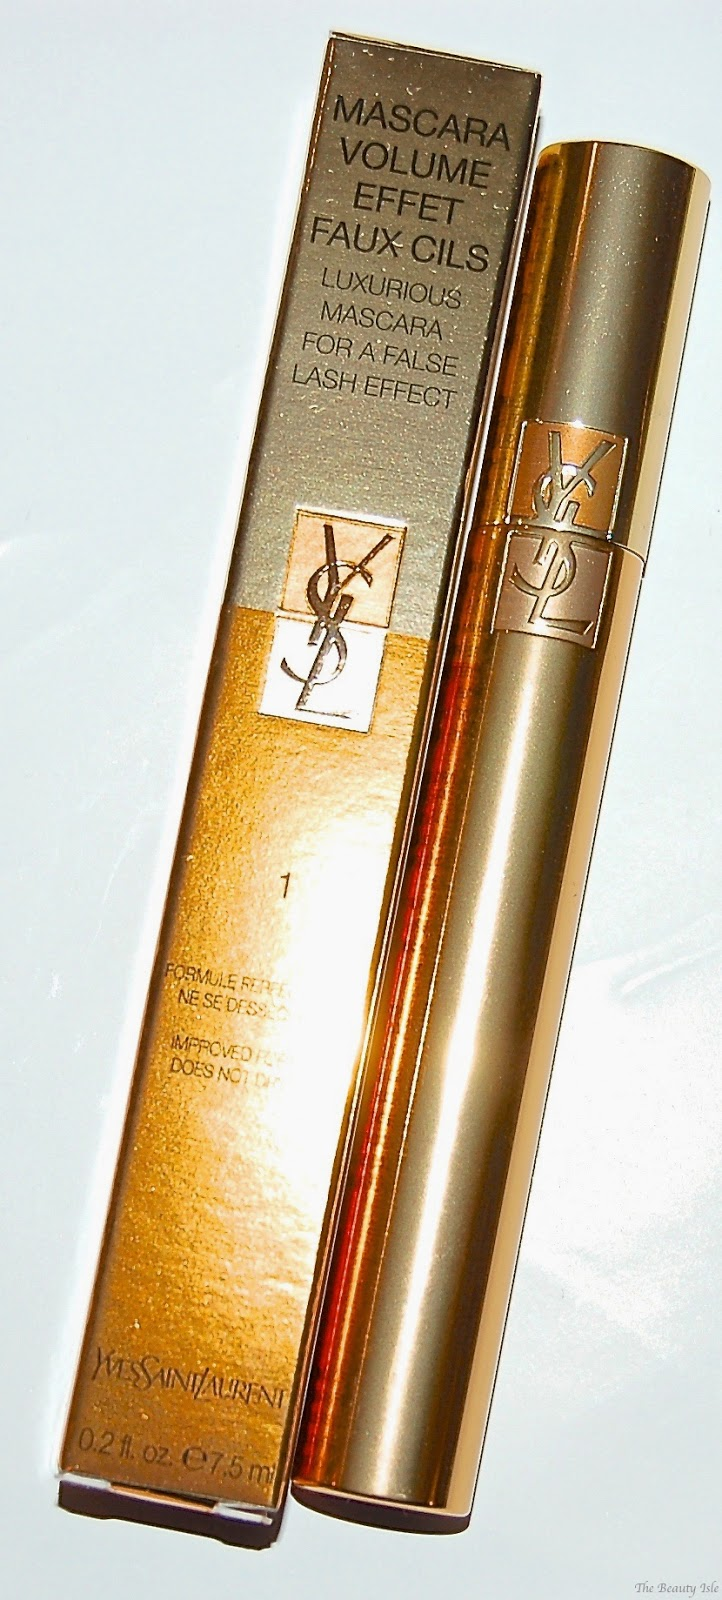 YSL Volume Effect Faux Cils Mascara